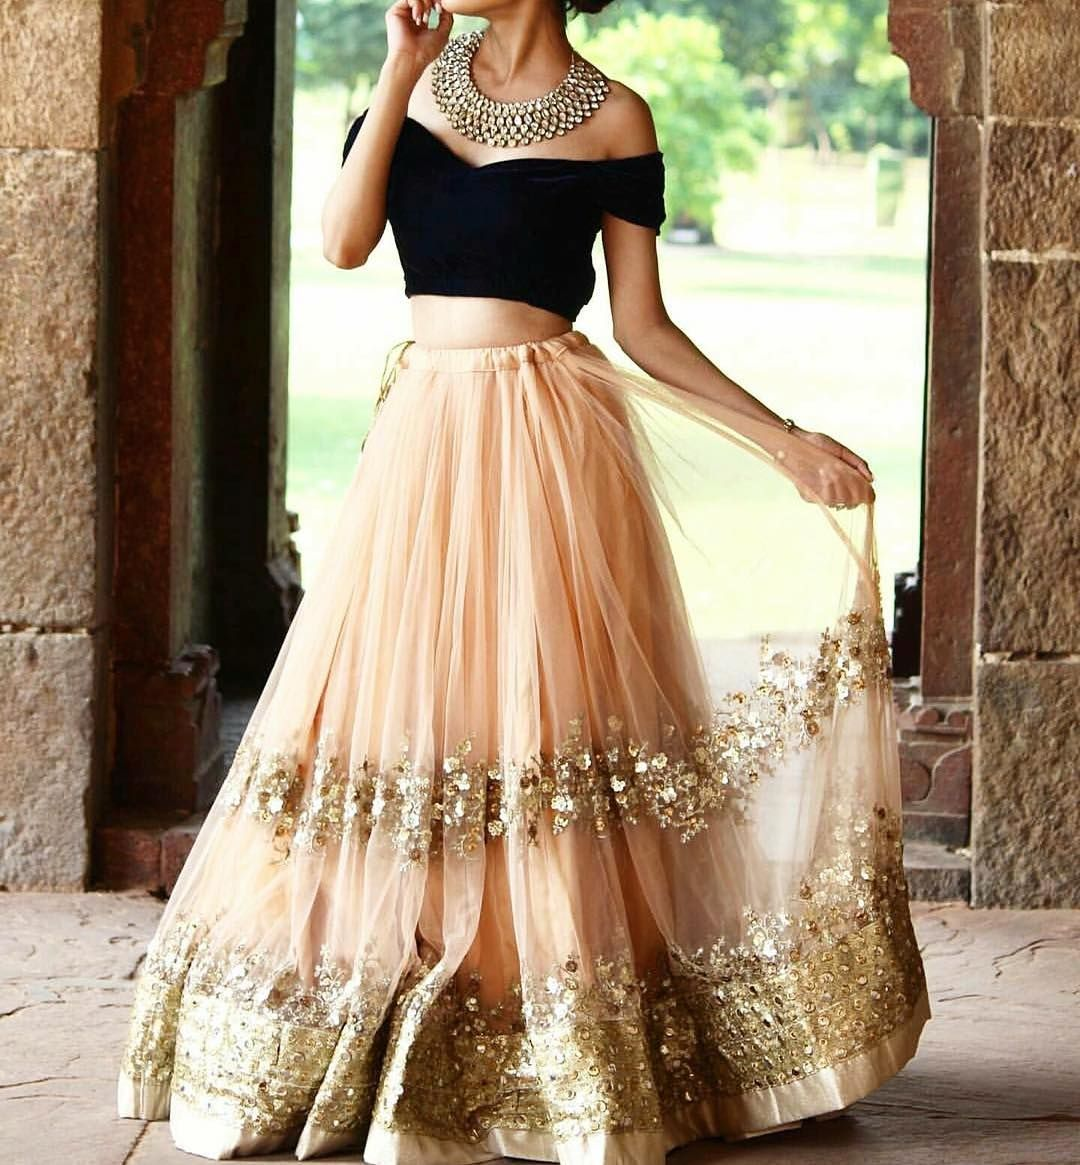 Dresses to wear to a wedding reception   Likes  Comments   Sat Shri Akal